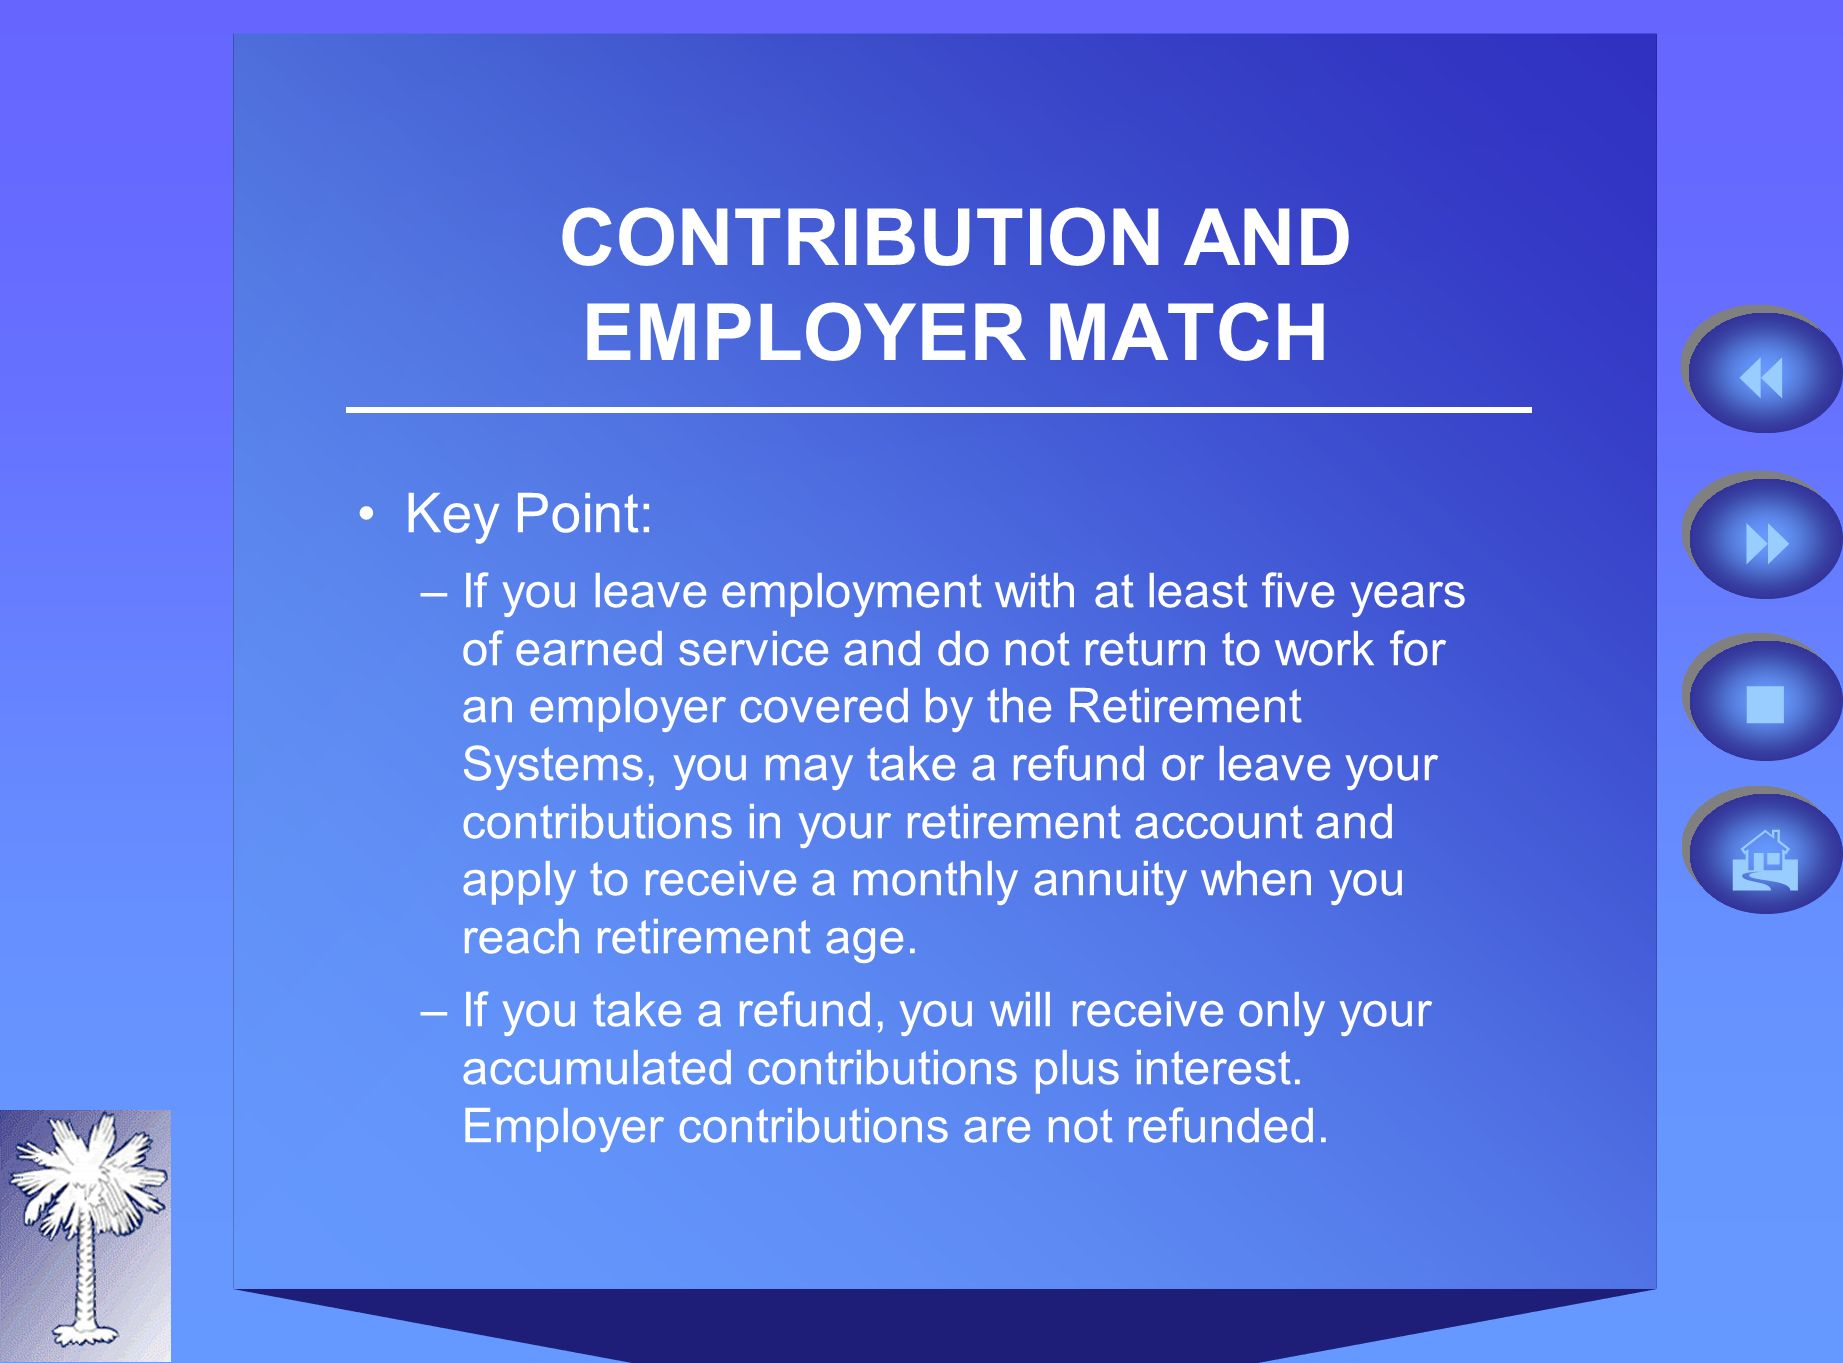 CONTRIBUTION AND EMPLOYER MATCH Key Point: –If you leave employment with at least five years of earned service and do not return to work for an employer covered by the Retirement Systems, you may take a refund or leave your contributions in your retirement account and apply to receive a monthly annuity when you reach retirement age.